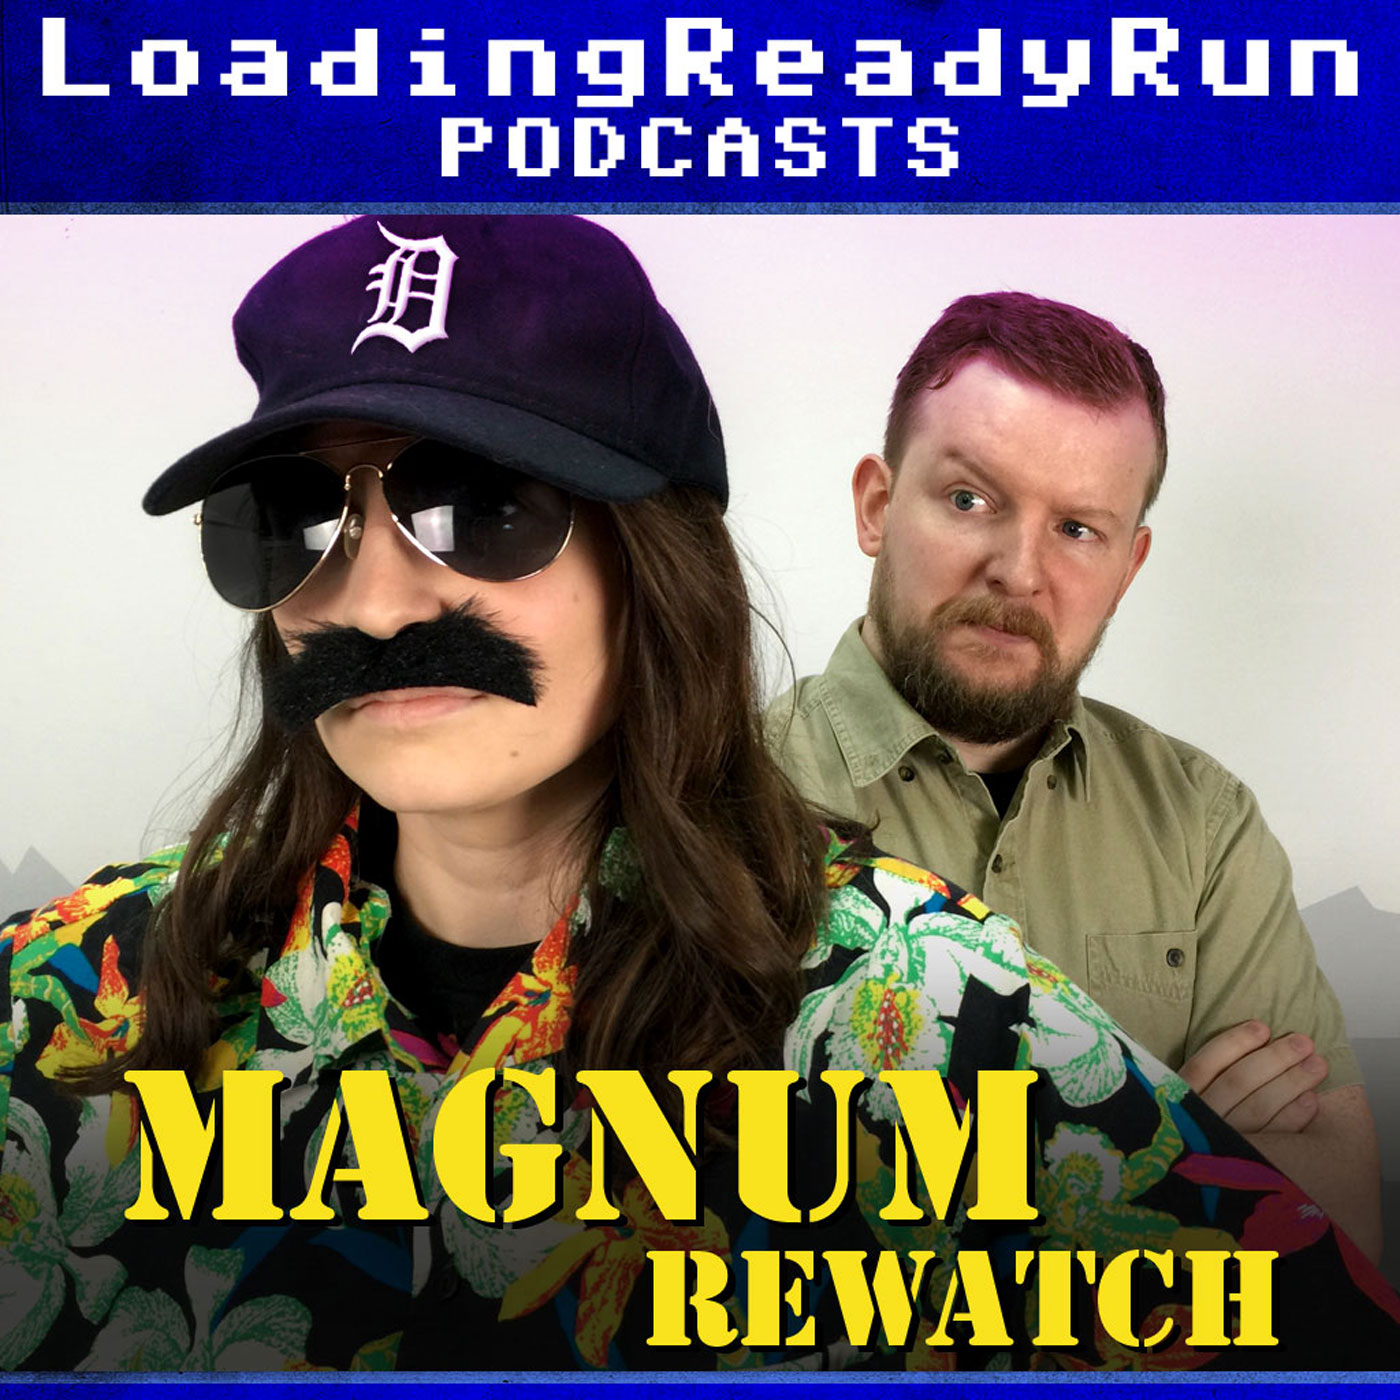 Magnum Rewatch - LoadingReadyRun